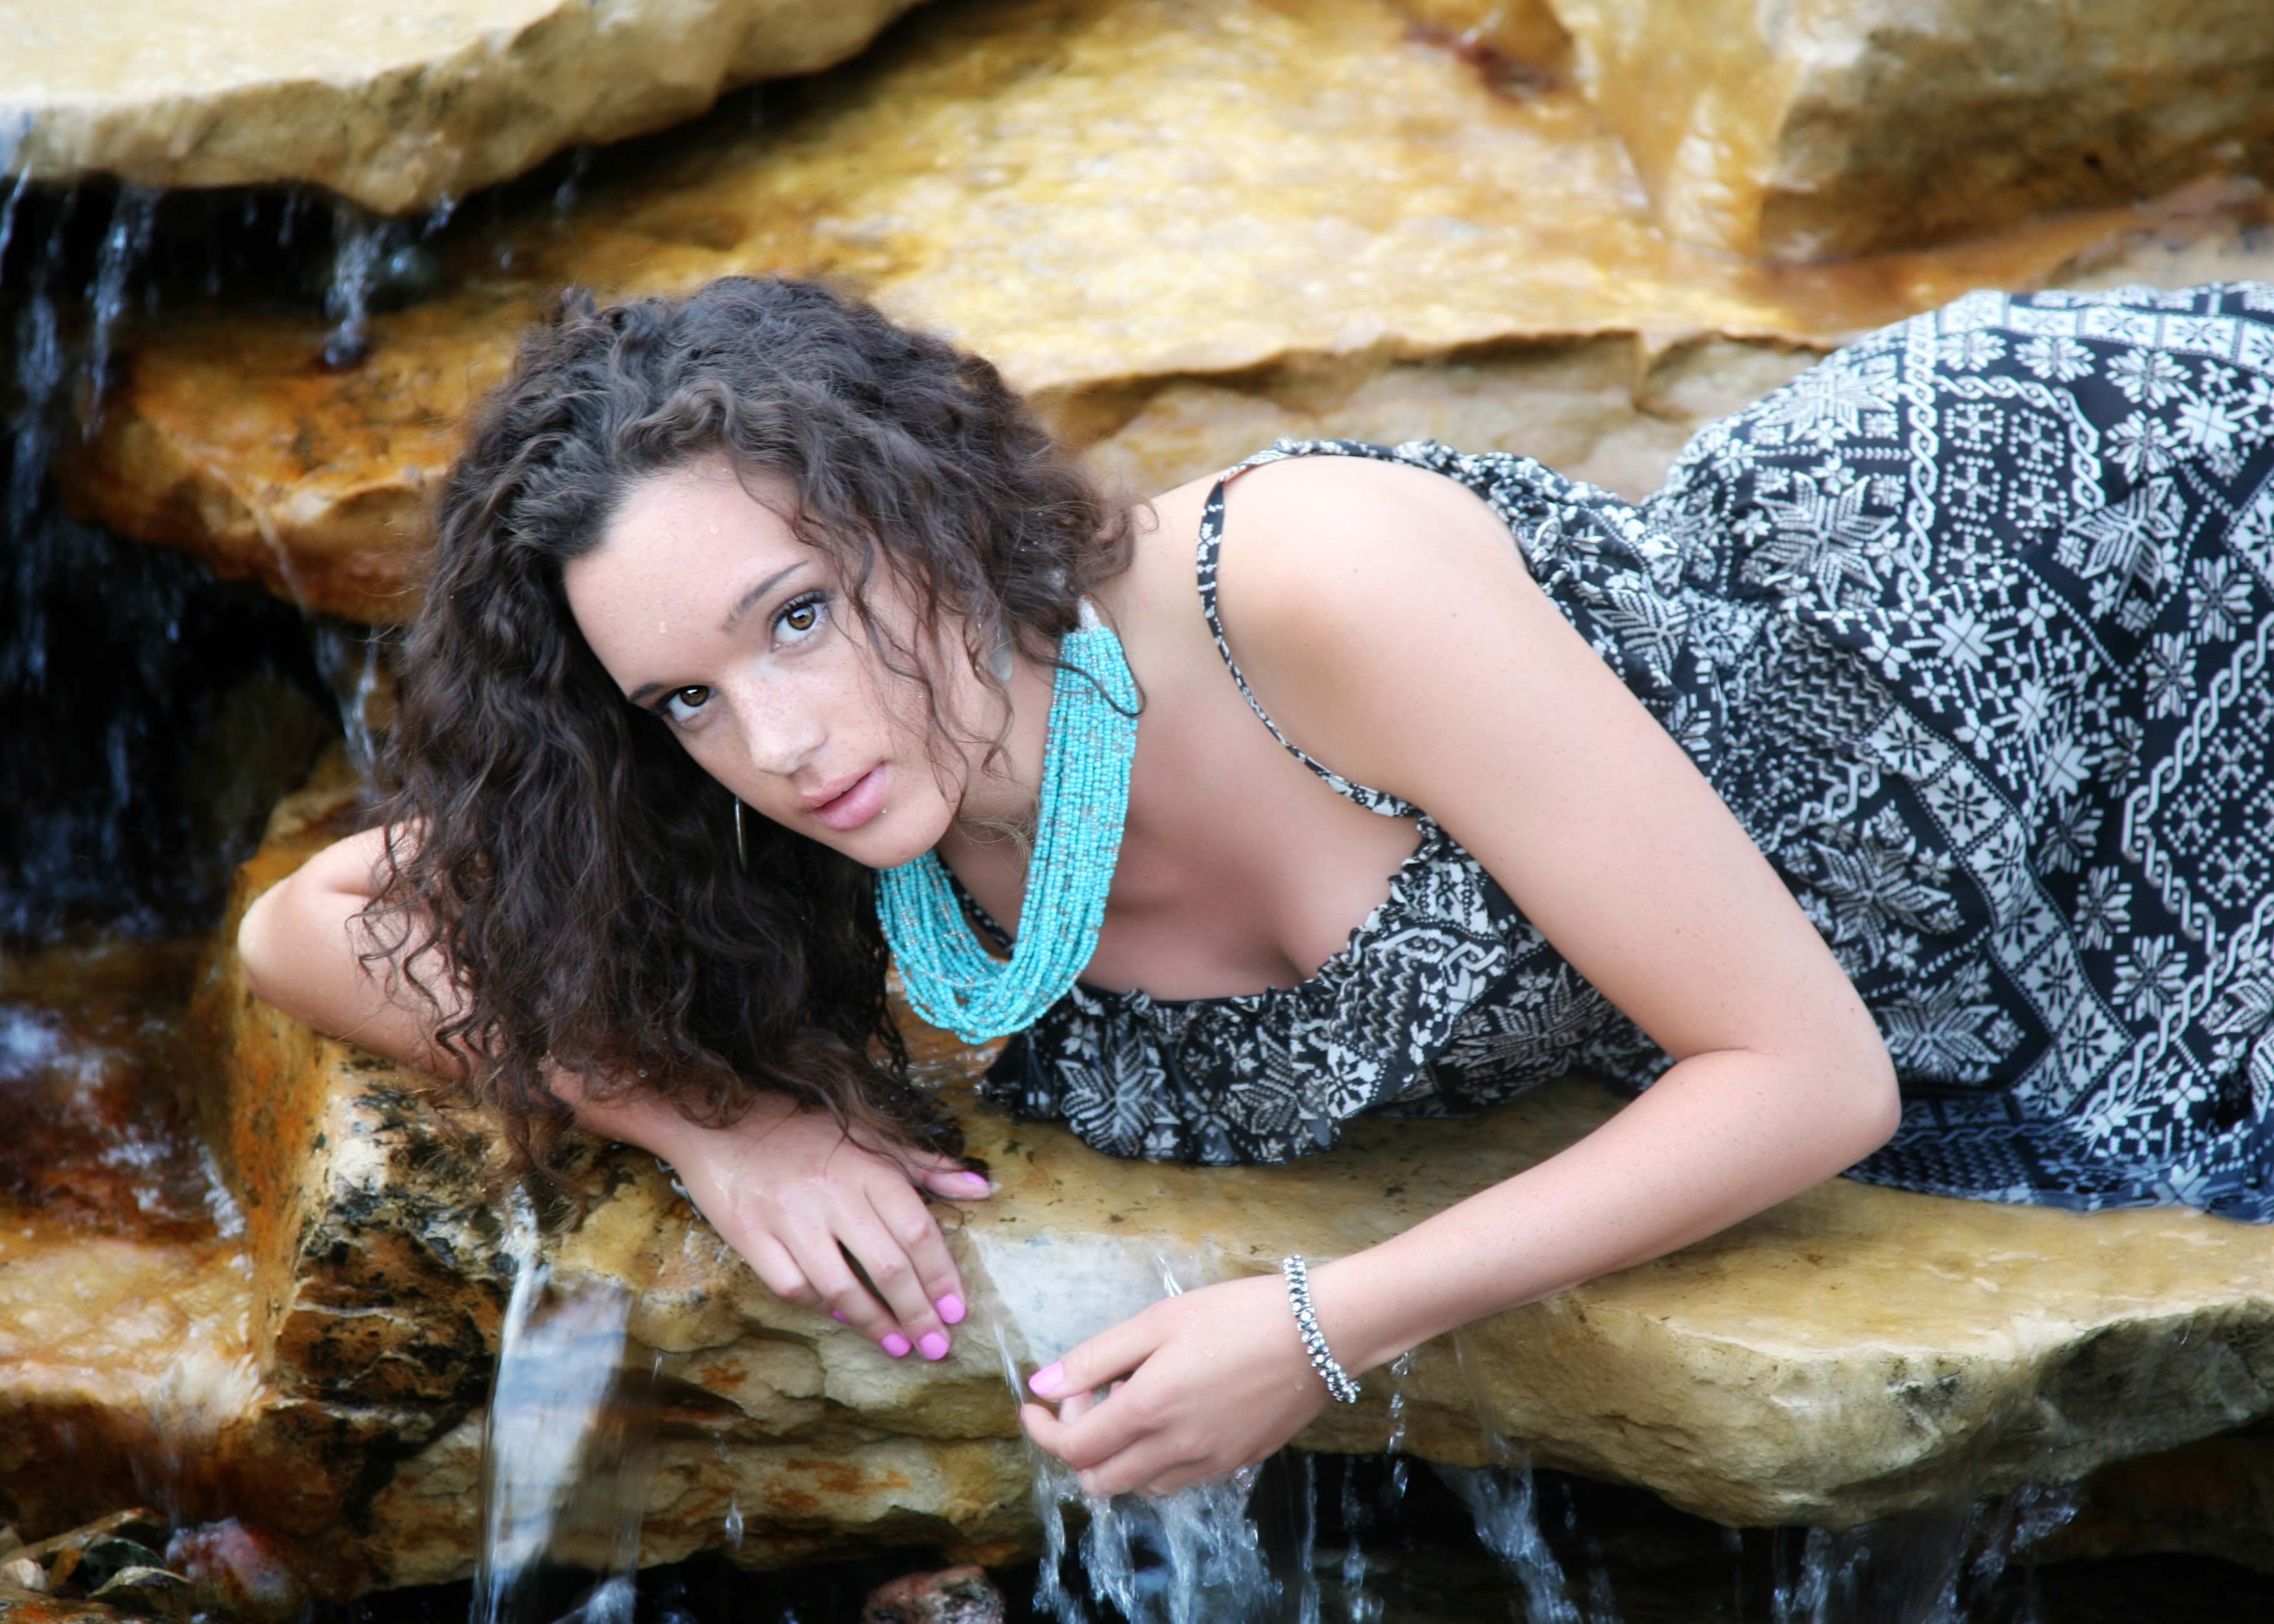 63-senior_water_photos_model_photographer_dress_wet.jpg